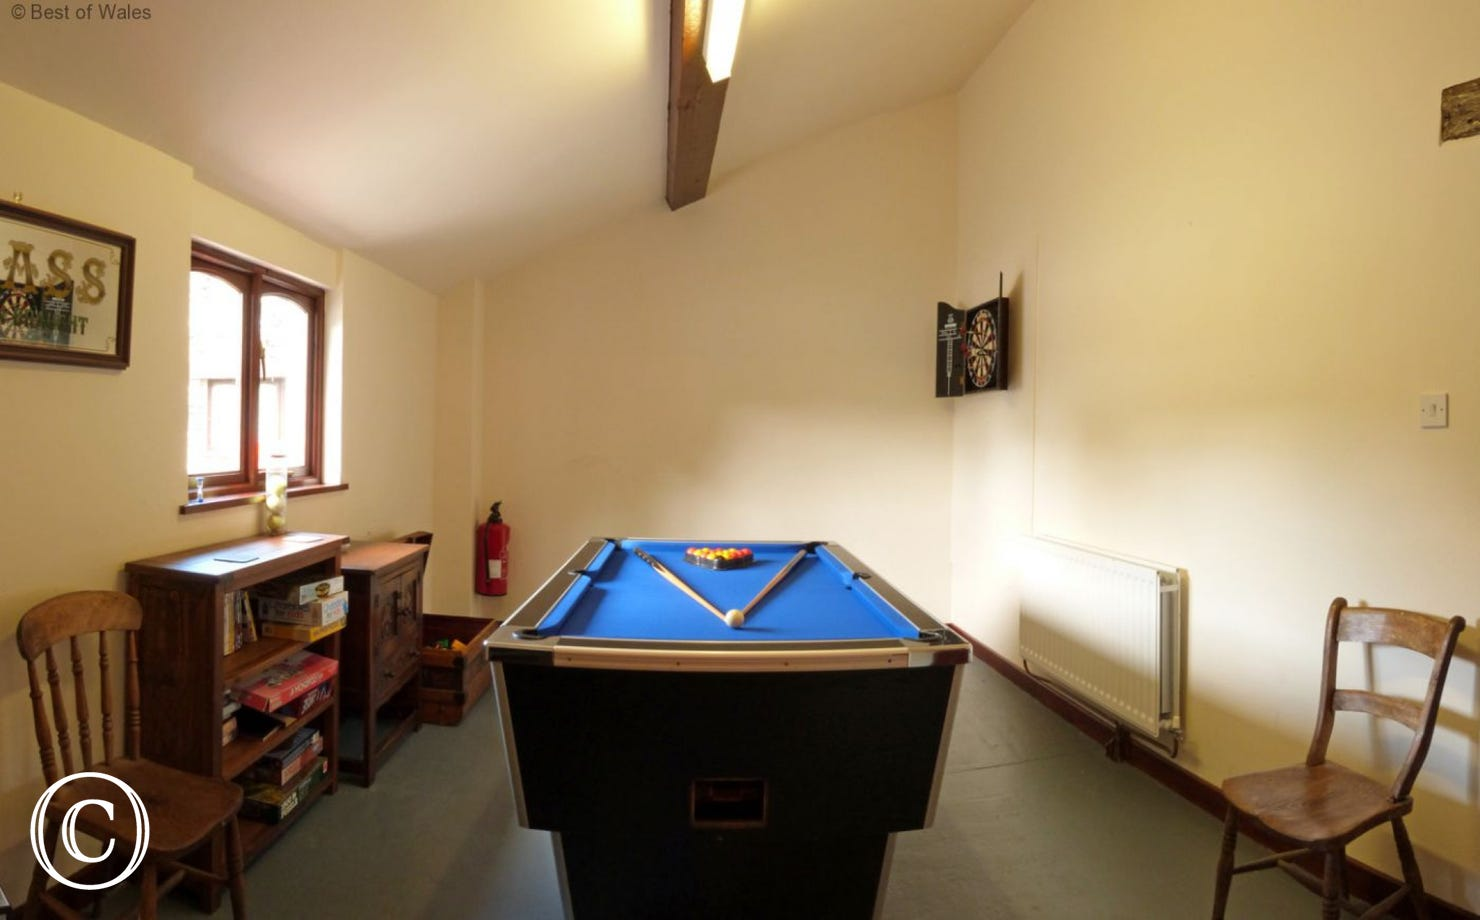 The games room on site includes a pool table and dart board.